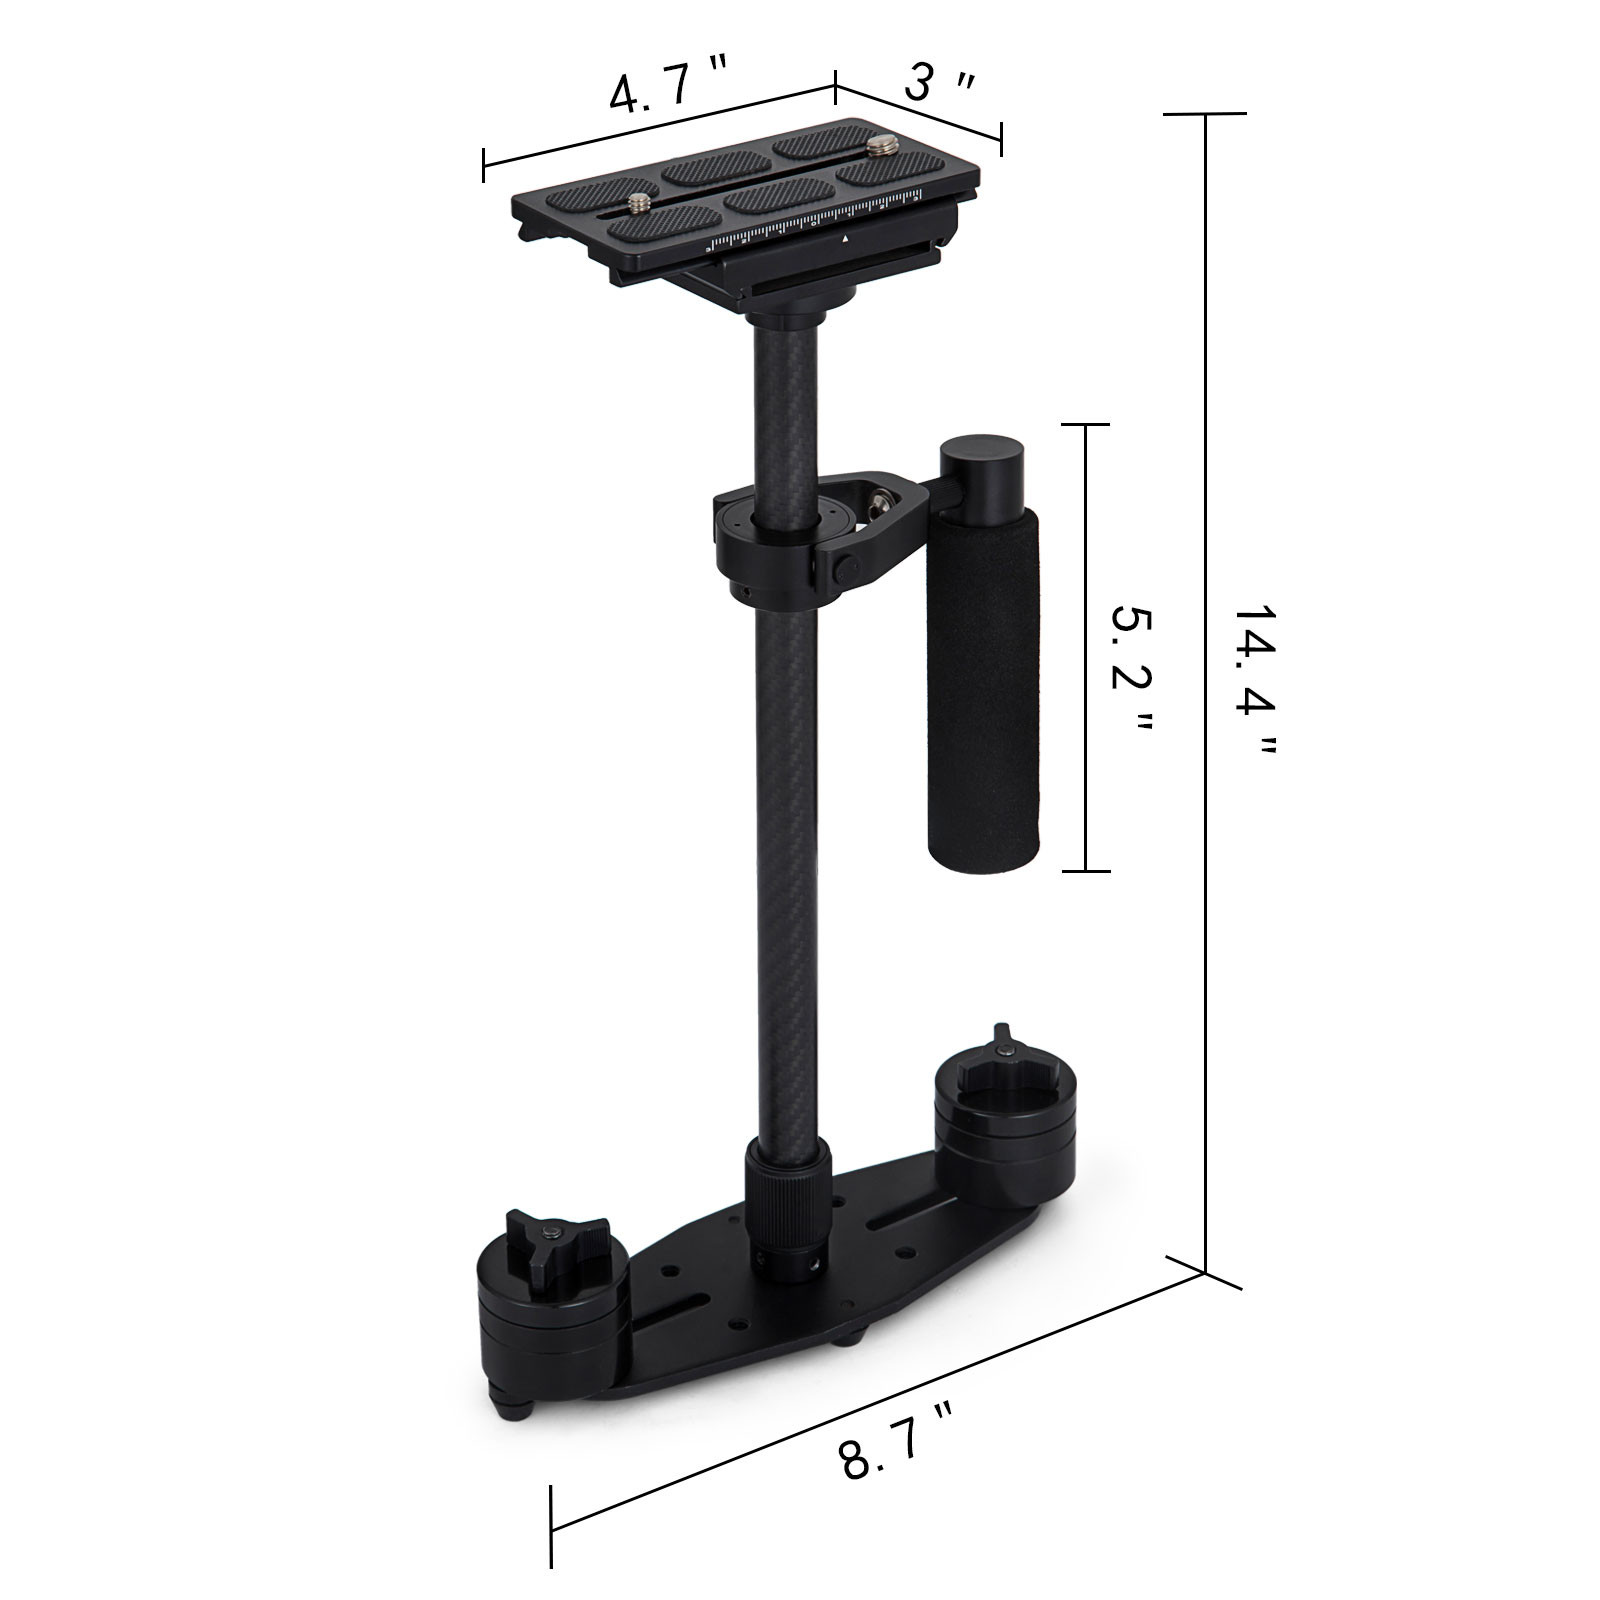 S60T-S60N-Handheld-Steady-Stabilizer-360-For-DSLR-Canon-Camera thumbnail 27